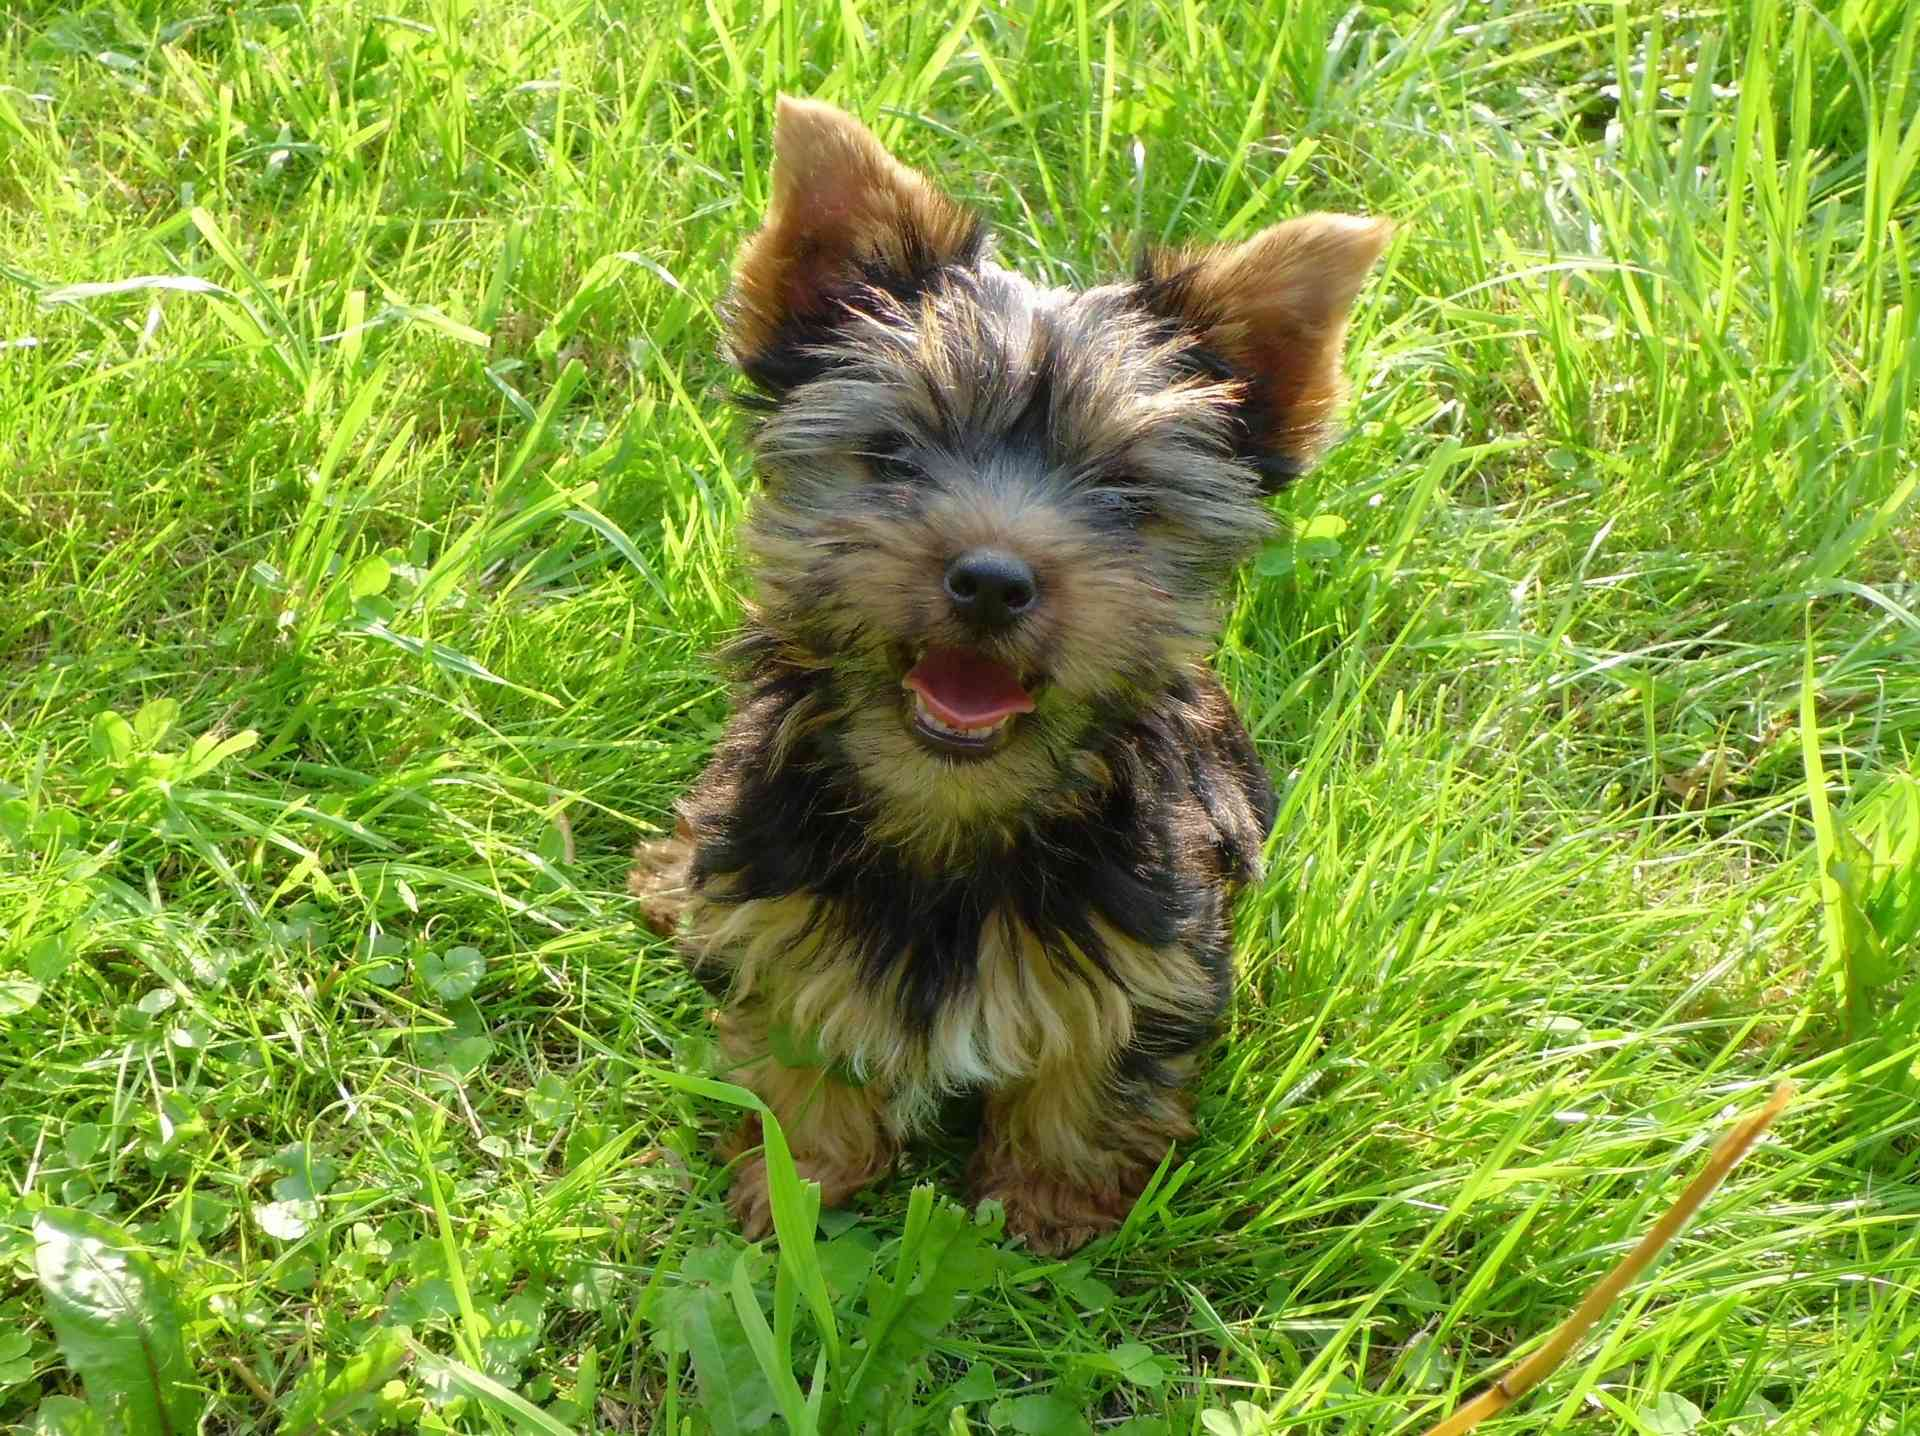 A Yorkshire terrier smiling for the camera.